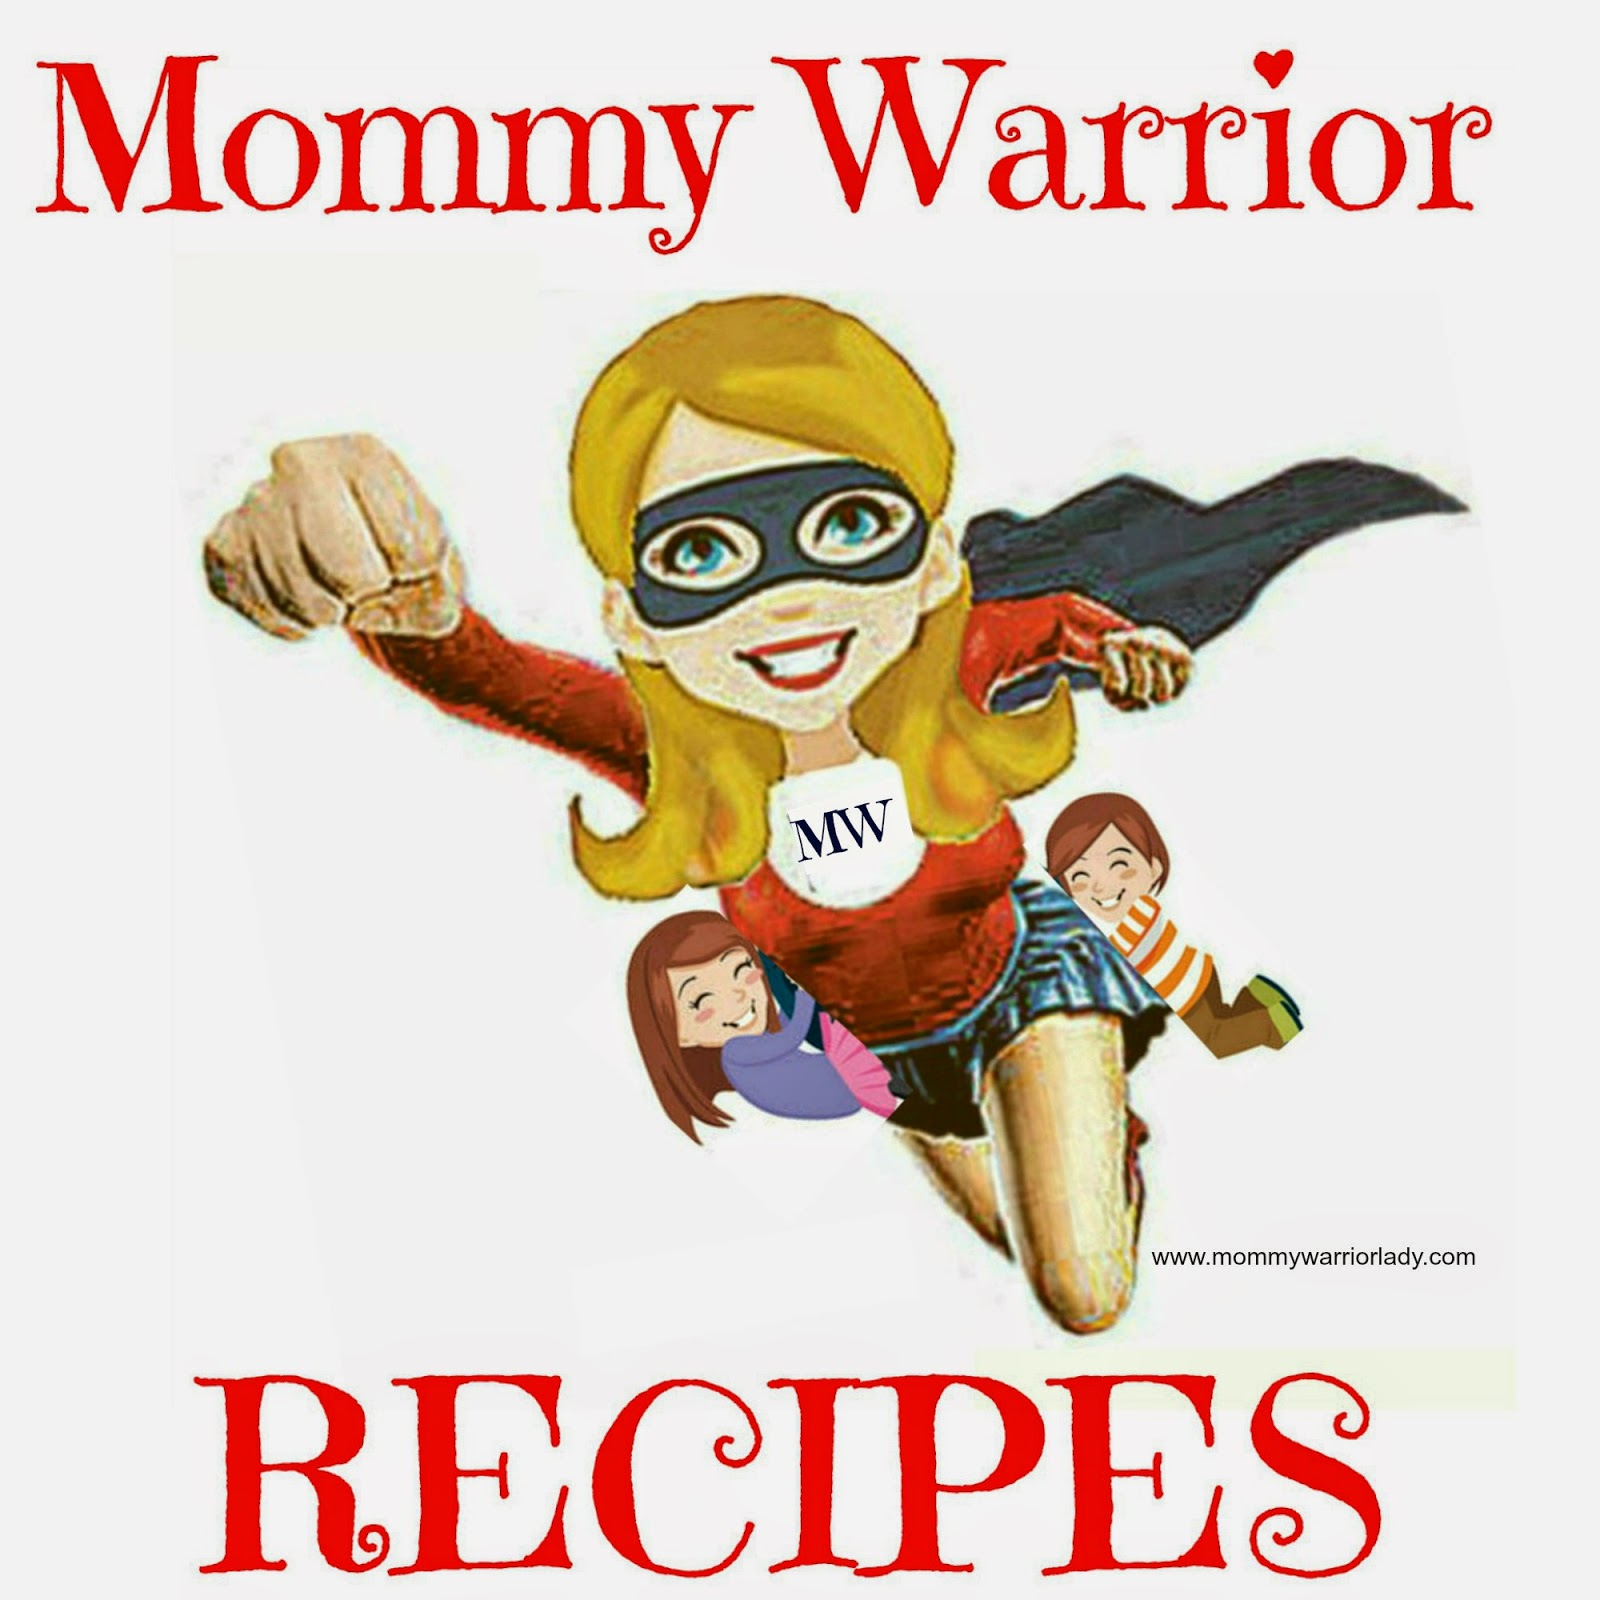 https://www.facebook.com/mommywarriorpage